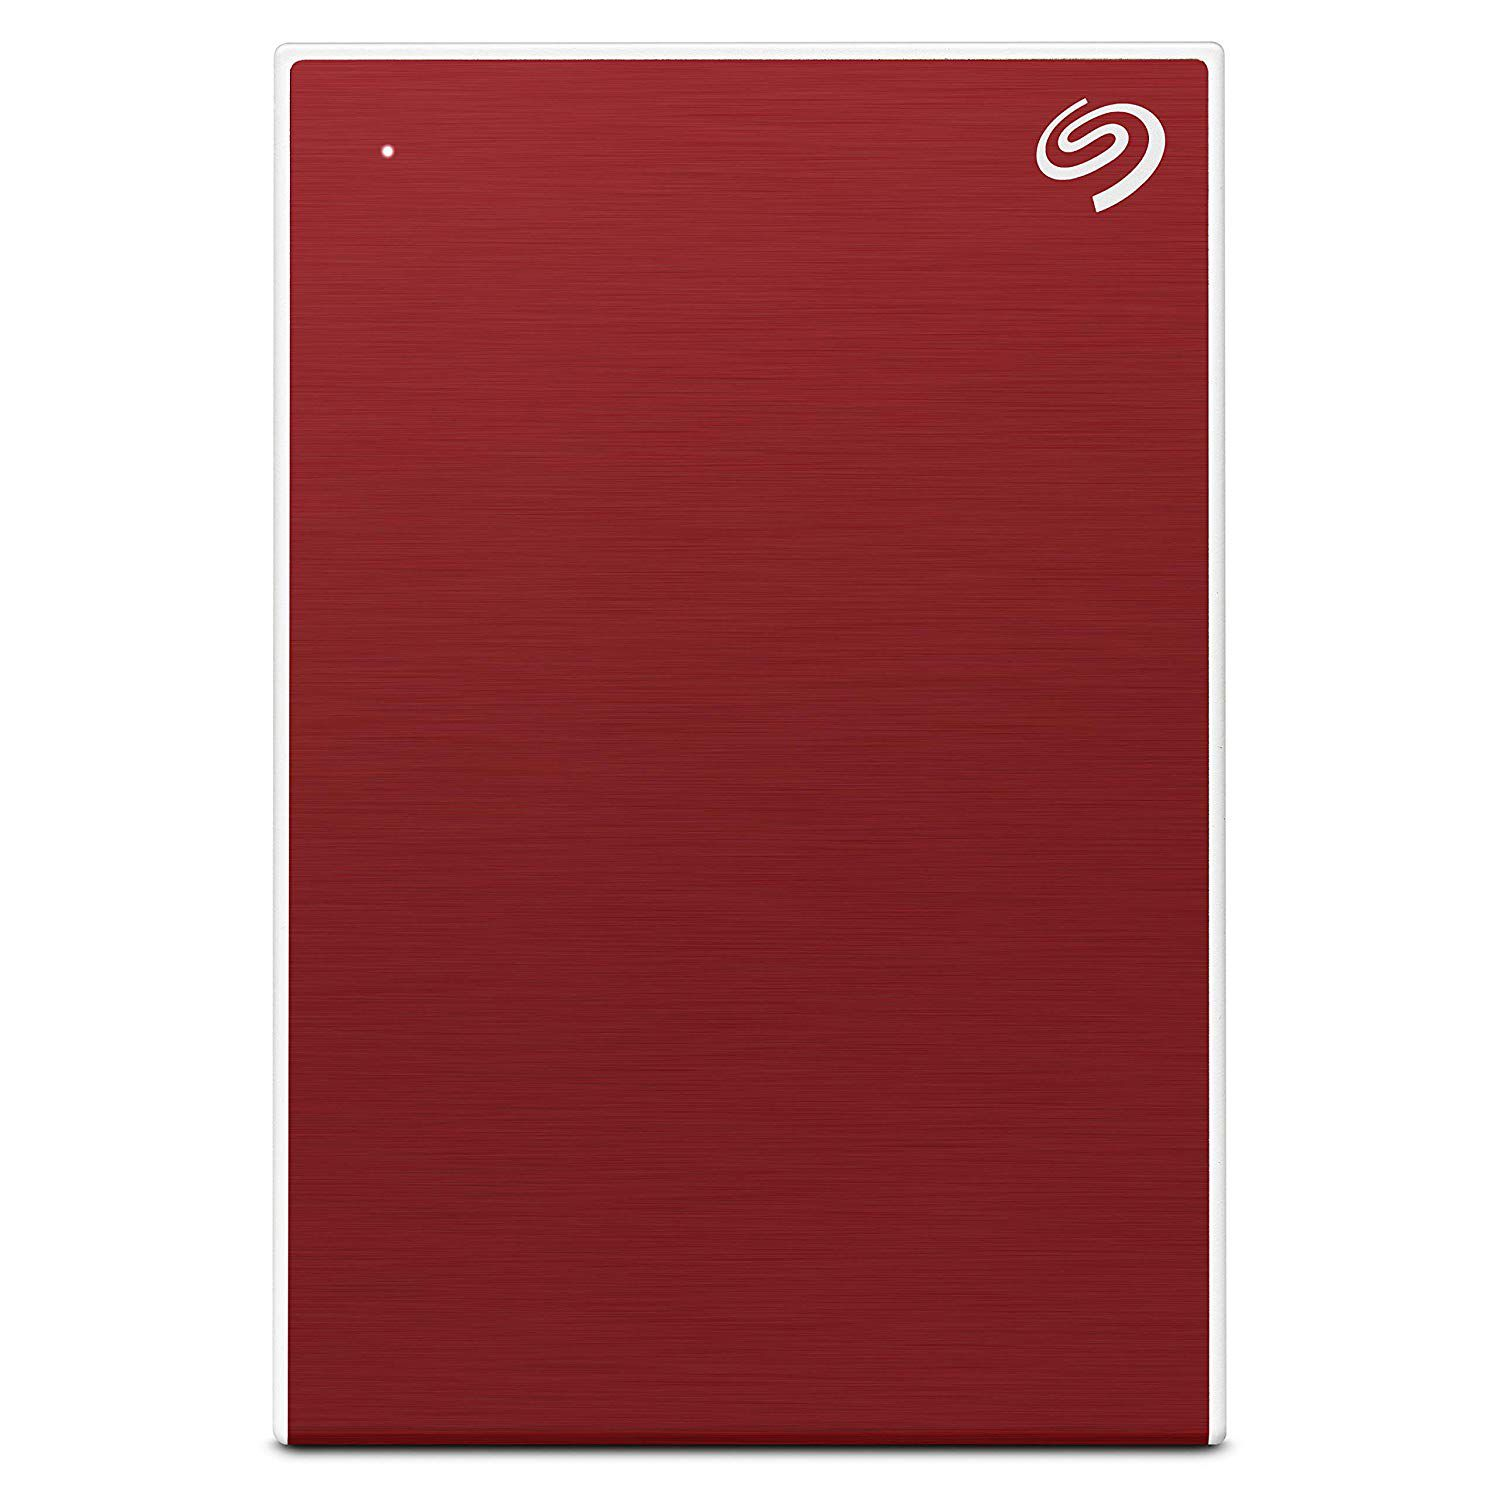 Seagate 2 TB Backup Plus Slim Portable External Hard Drive with 3 Offers Inside (Red) 2019 Edition